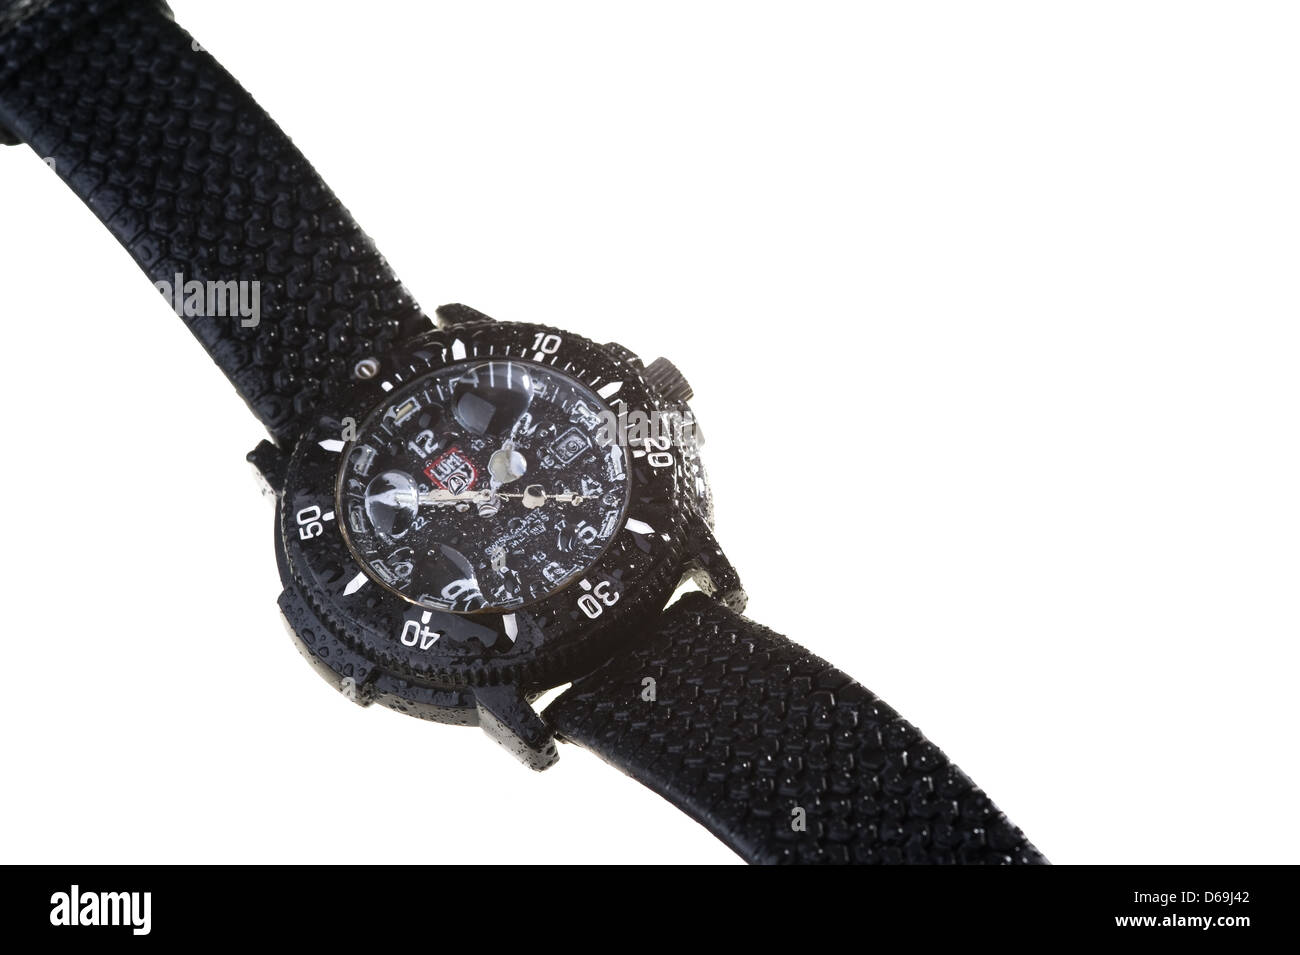 A waterproof wristwatch with water droplets of water - Stock Image